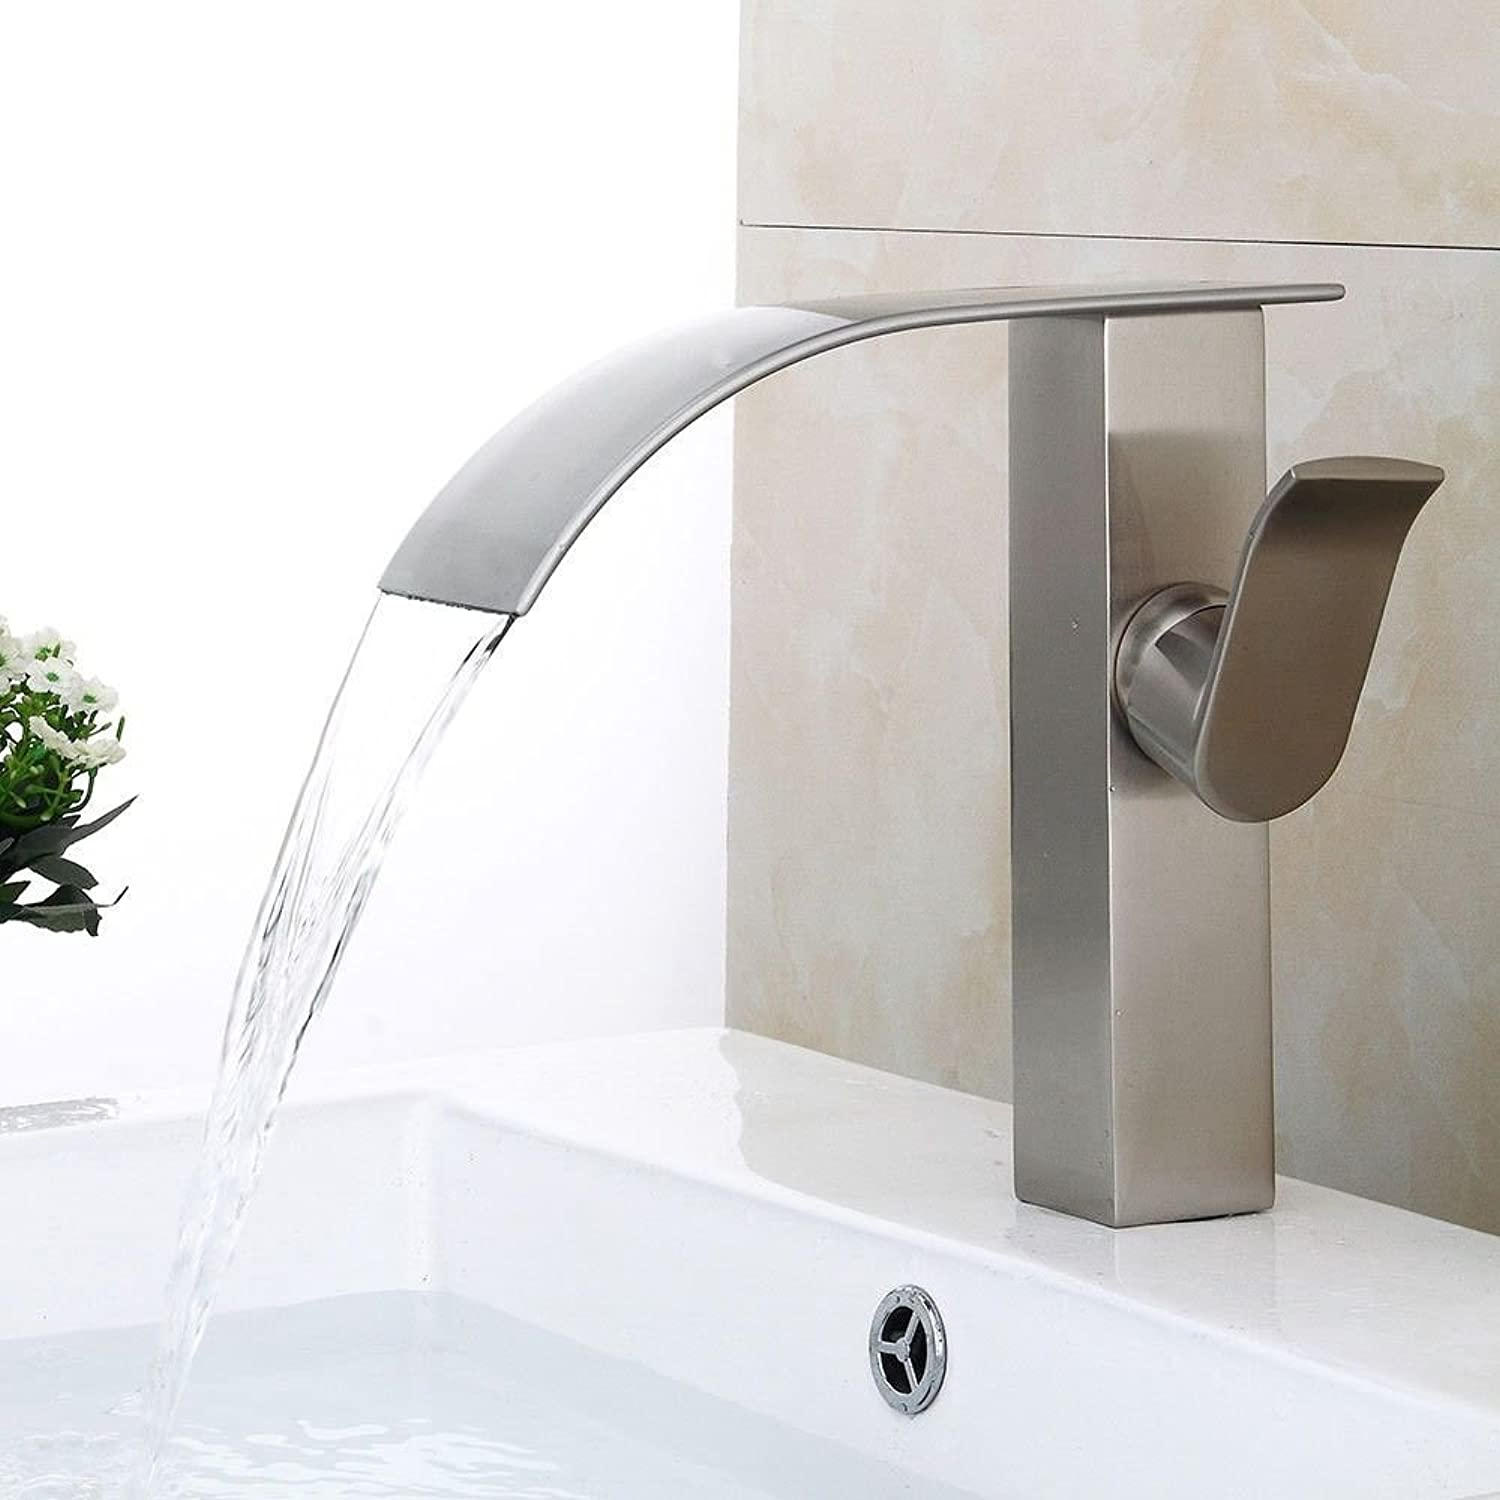 Janitorial & Sanitation Supplies Lalaky Taps Faucet Kitchen Mixer Sink Waterfall Bathroom Mixer Basin Mixer Tap for Kitchen Bathroom and Washroom Led Color Changing Lamp Glass Waterfall Single Hole